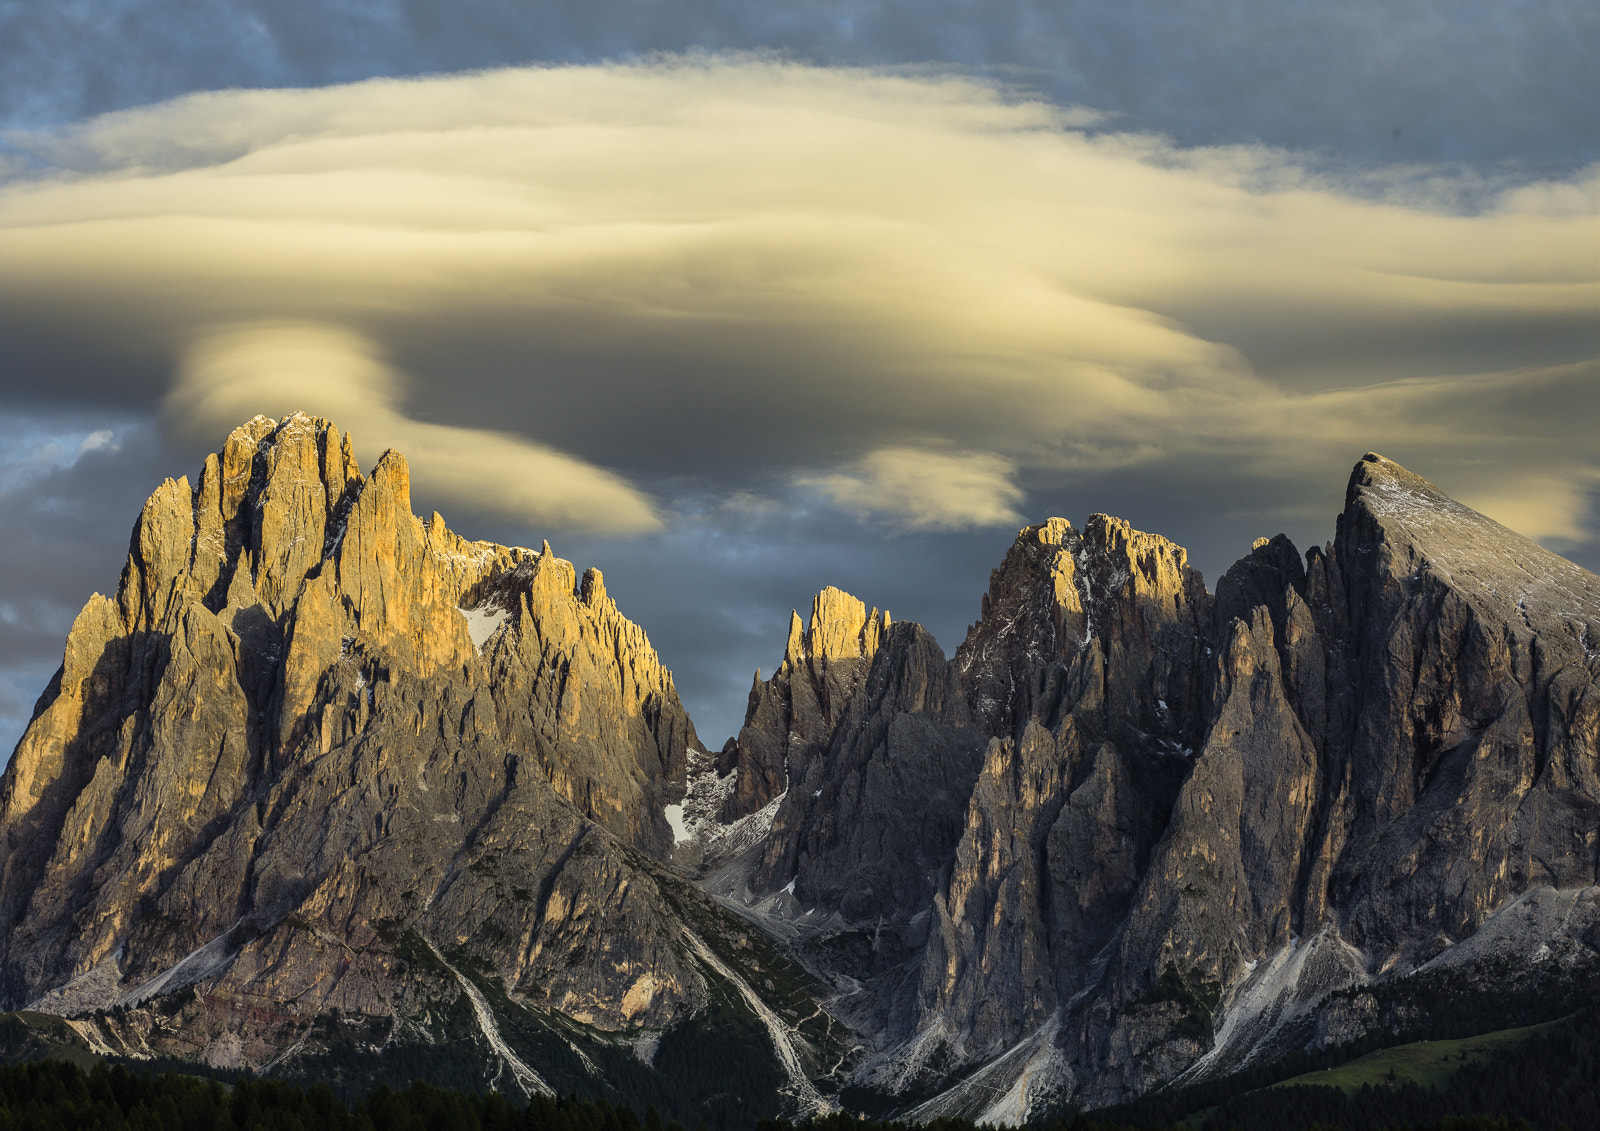 Photograph Sassolungo with Lenticular Clouds by Hans Kruse on 500px